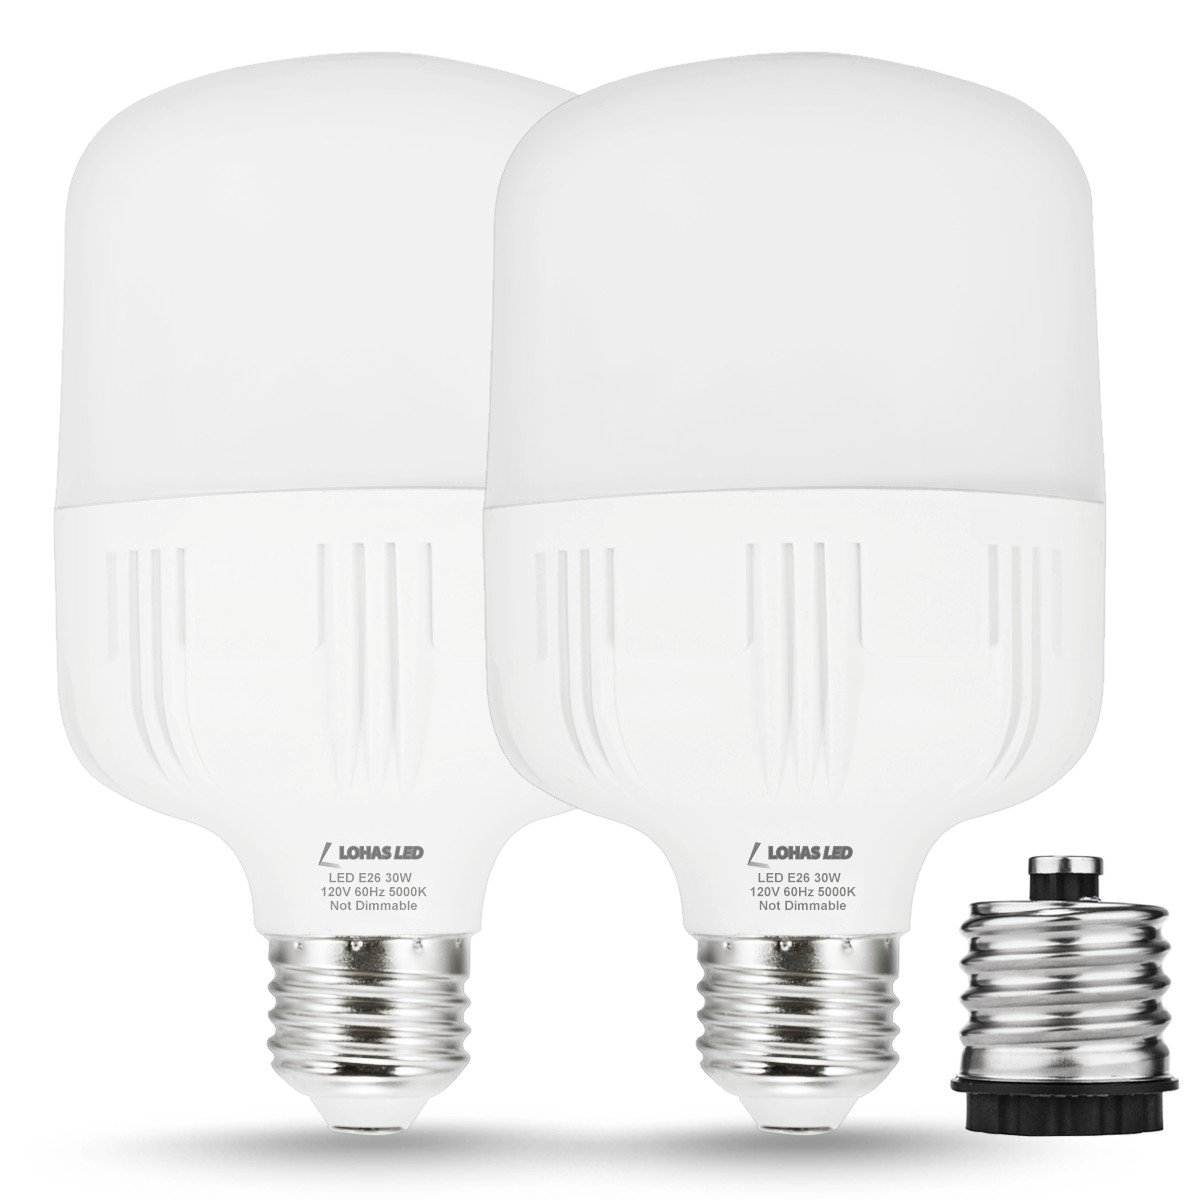 LOHAS 250W-300W Light Bulb Equivalent, 30W LED Bulb Daylight White 5000K with Free E26 to E39 Converter, 3400 Lumens, High Watt Commercial Retrofit LED Bulbs for Garage Warehouse Workshop(2 Pack)